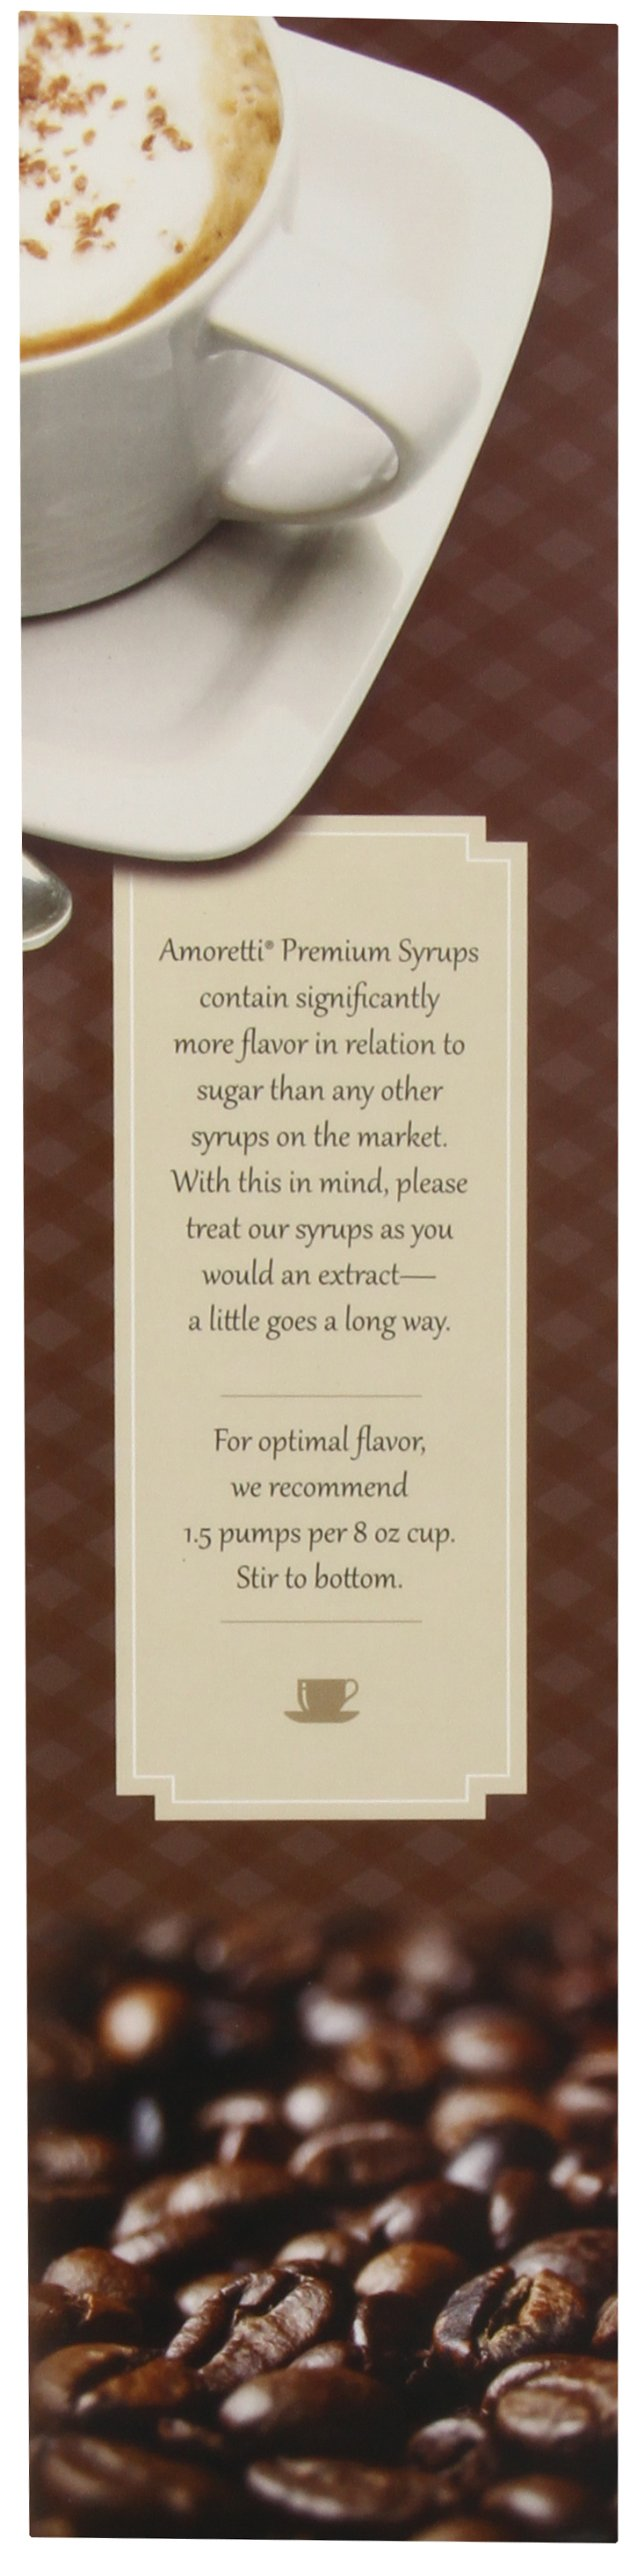 Amoretti Premium Crema Di Salted Caramel Syrup, 25.4 fluid Ounce by Amoretti (Image #6)